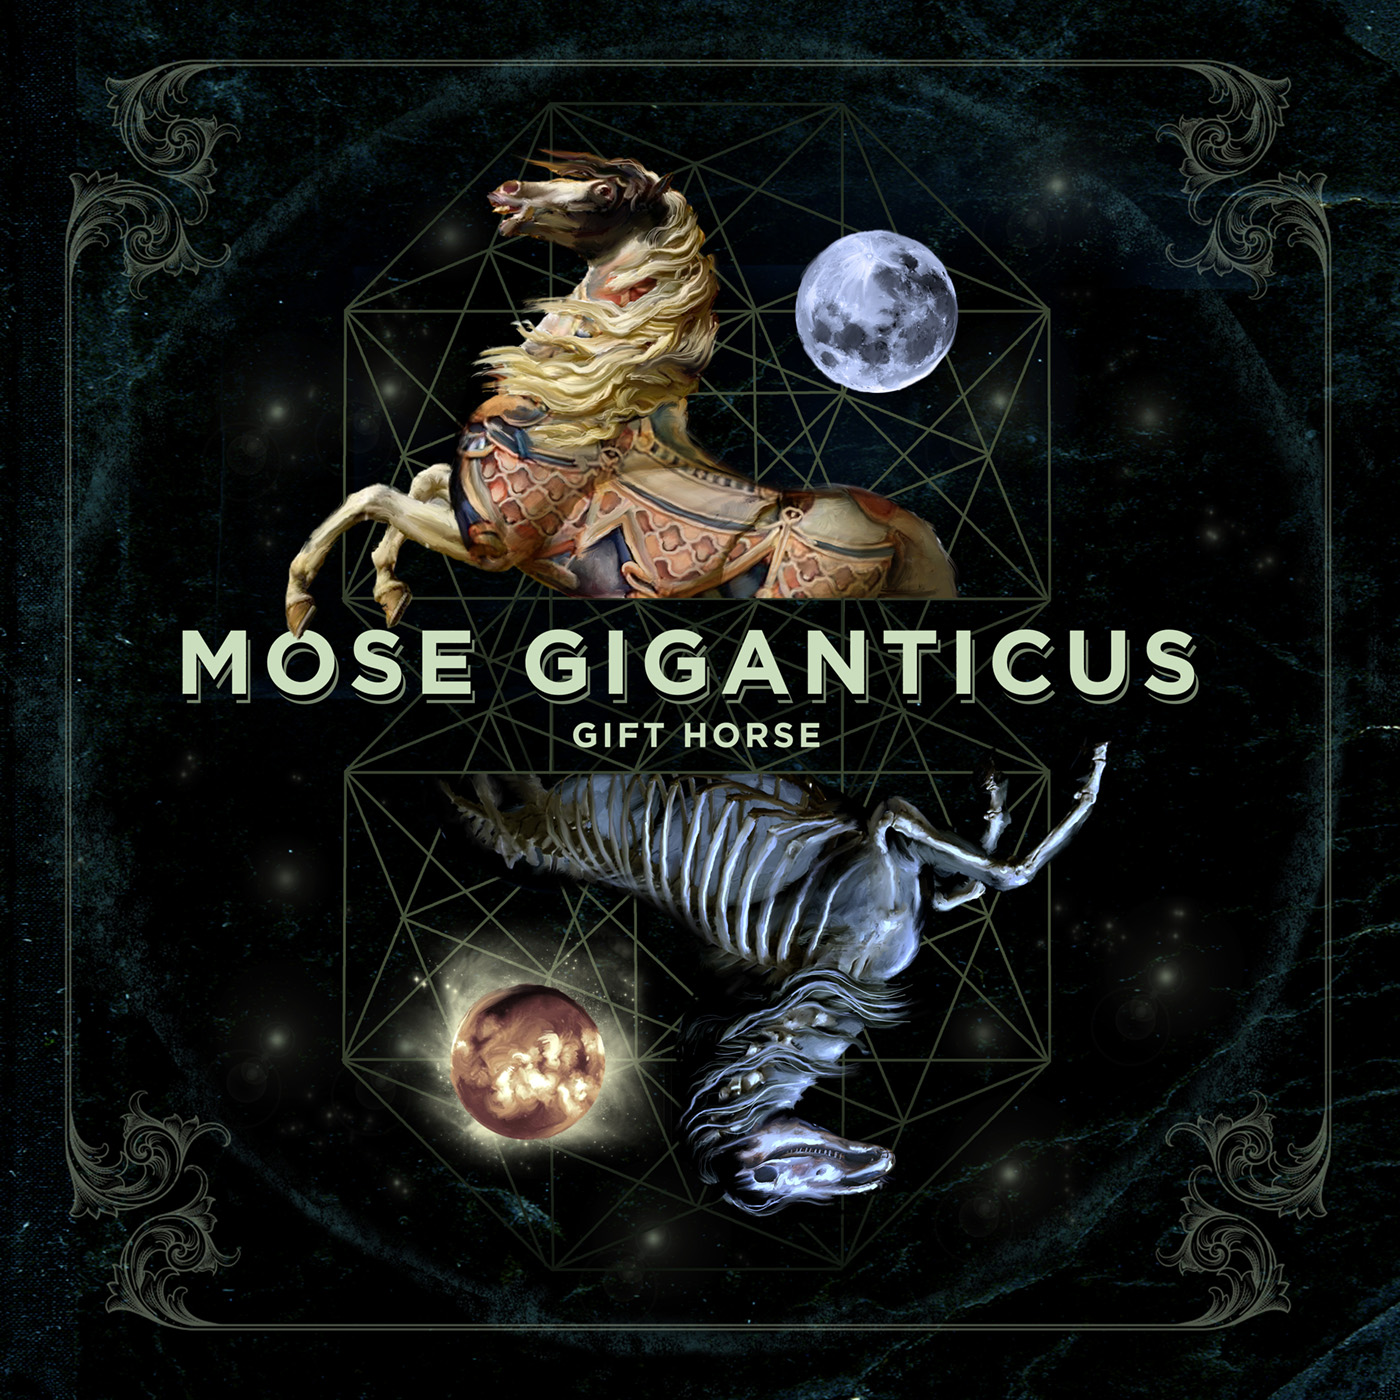 Mose Giganticus – Gift Horse Review